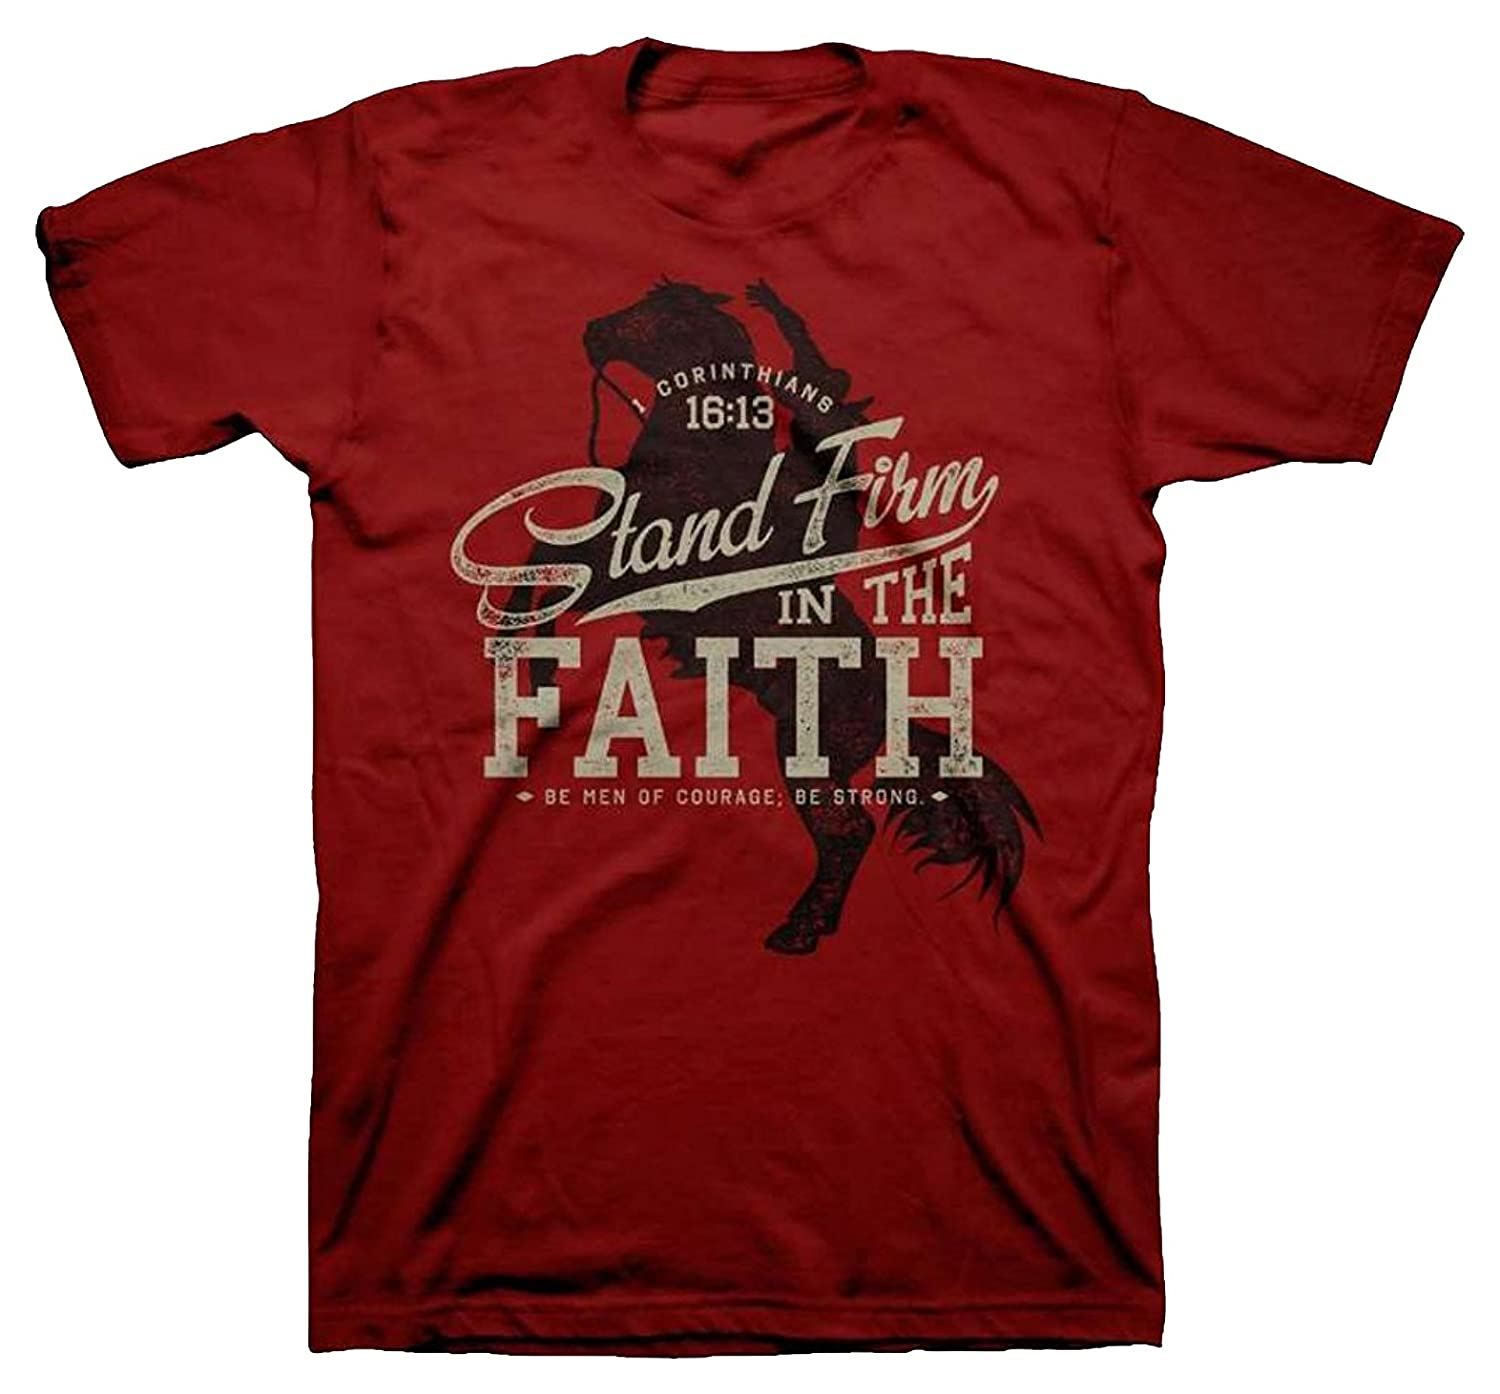 Stand Firm In the Faith Mens Christian Inspirational T-Shirt